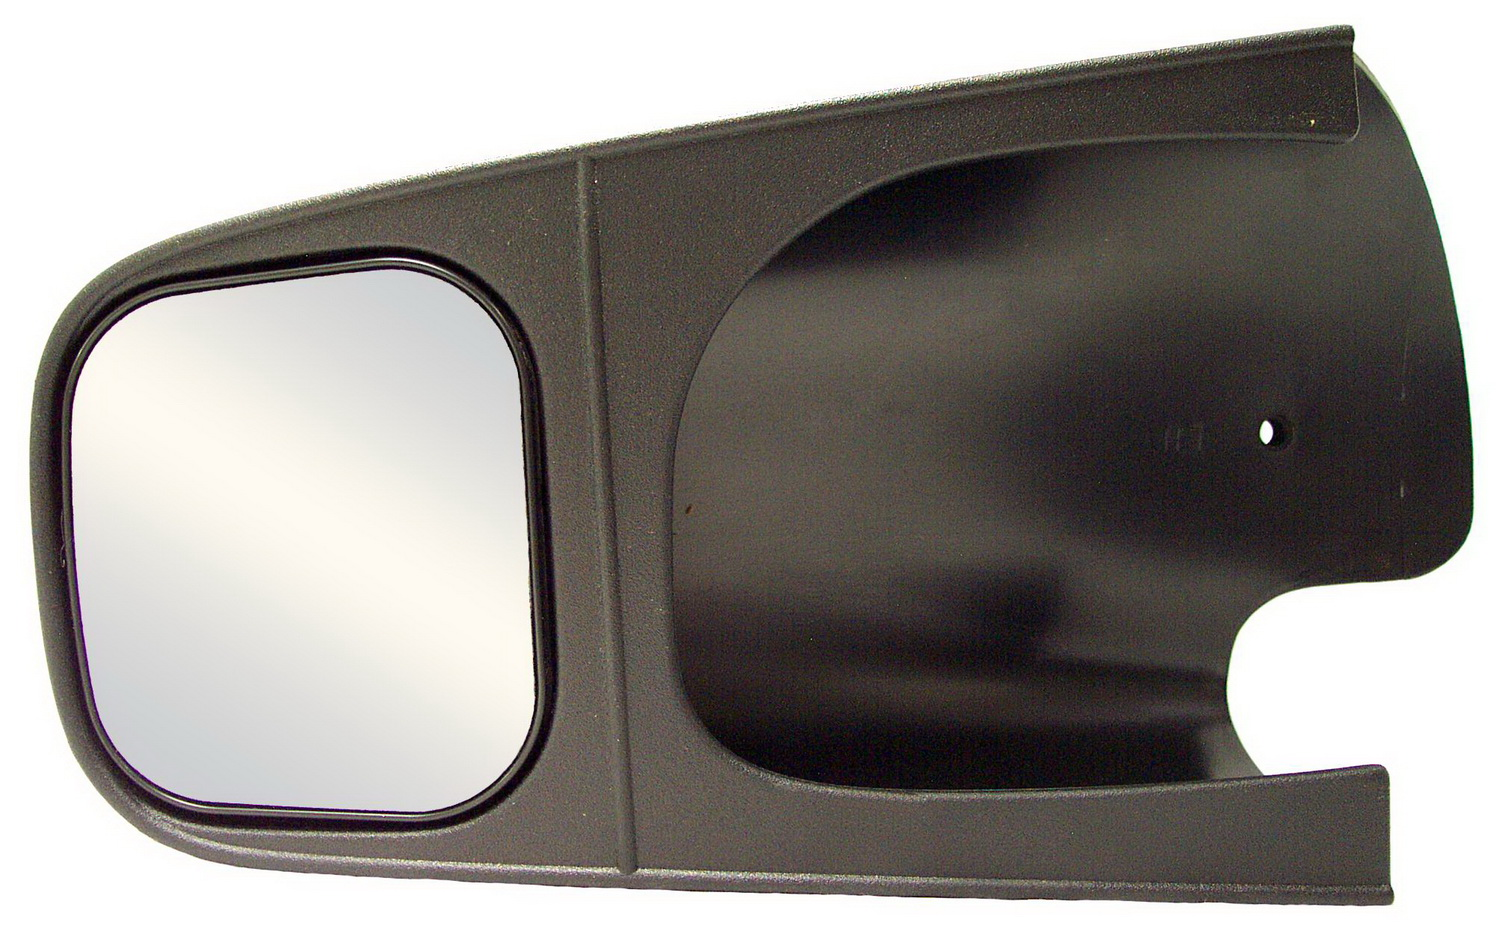 10500 CIPA Exterior Towing Mirror Slide On